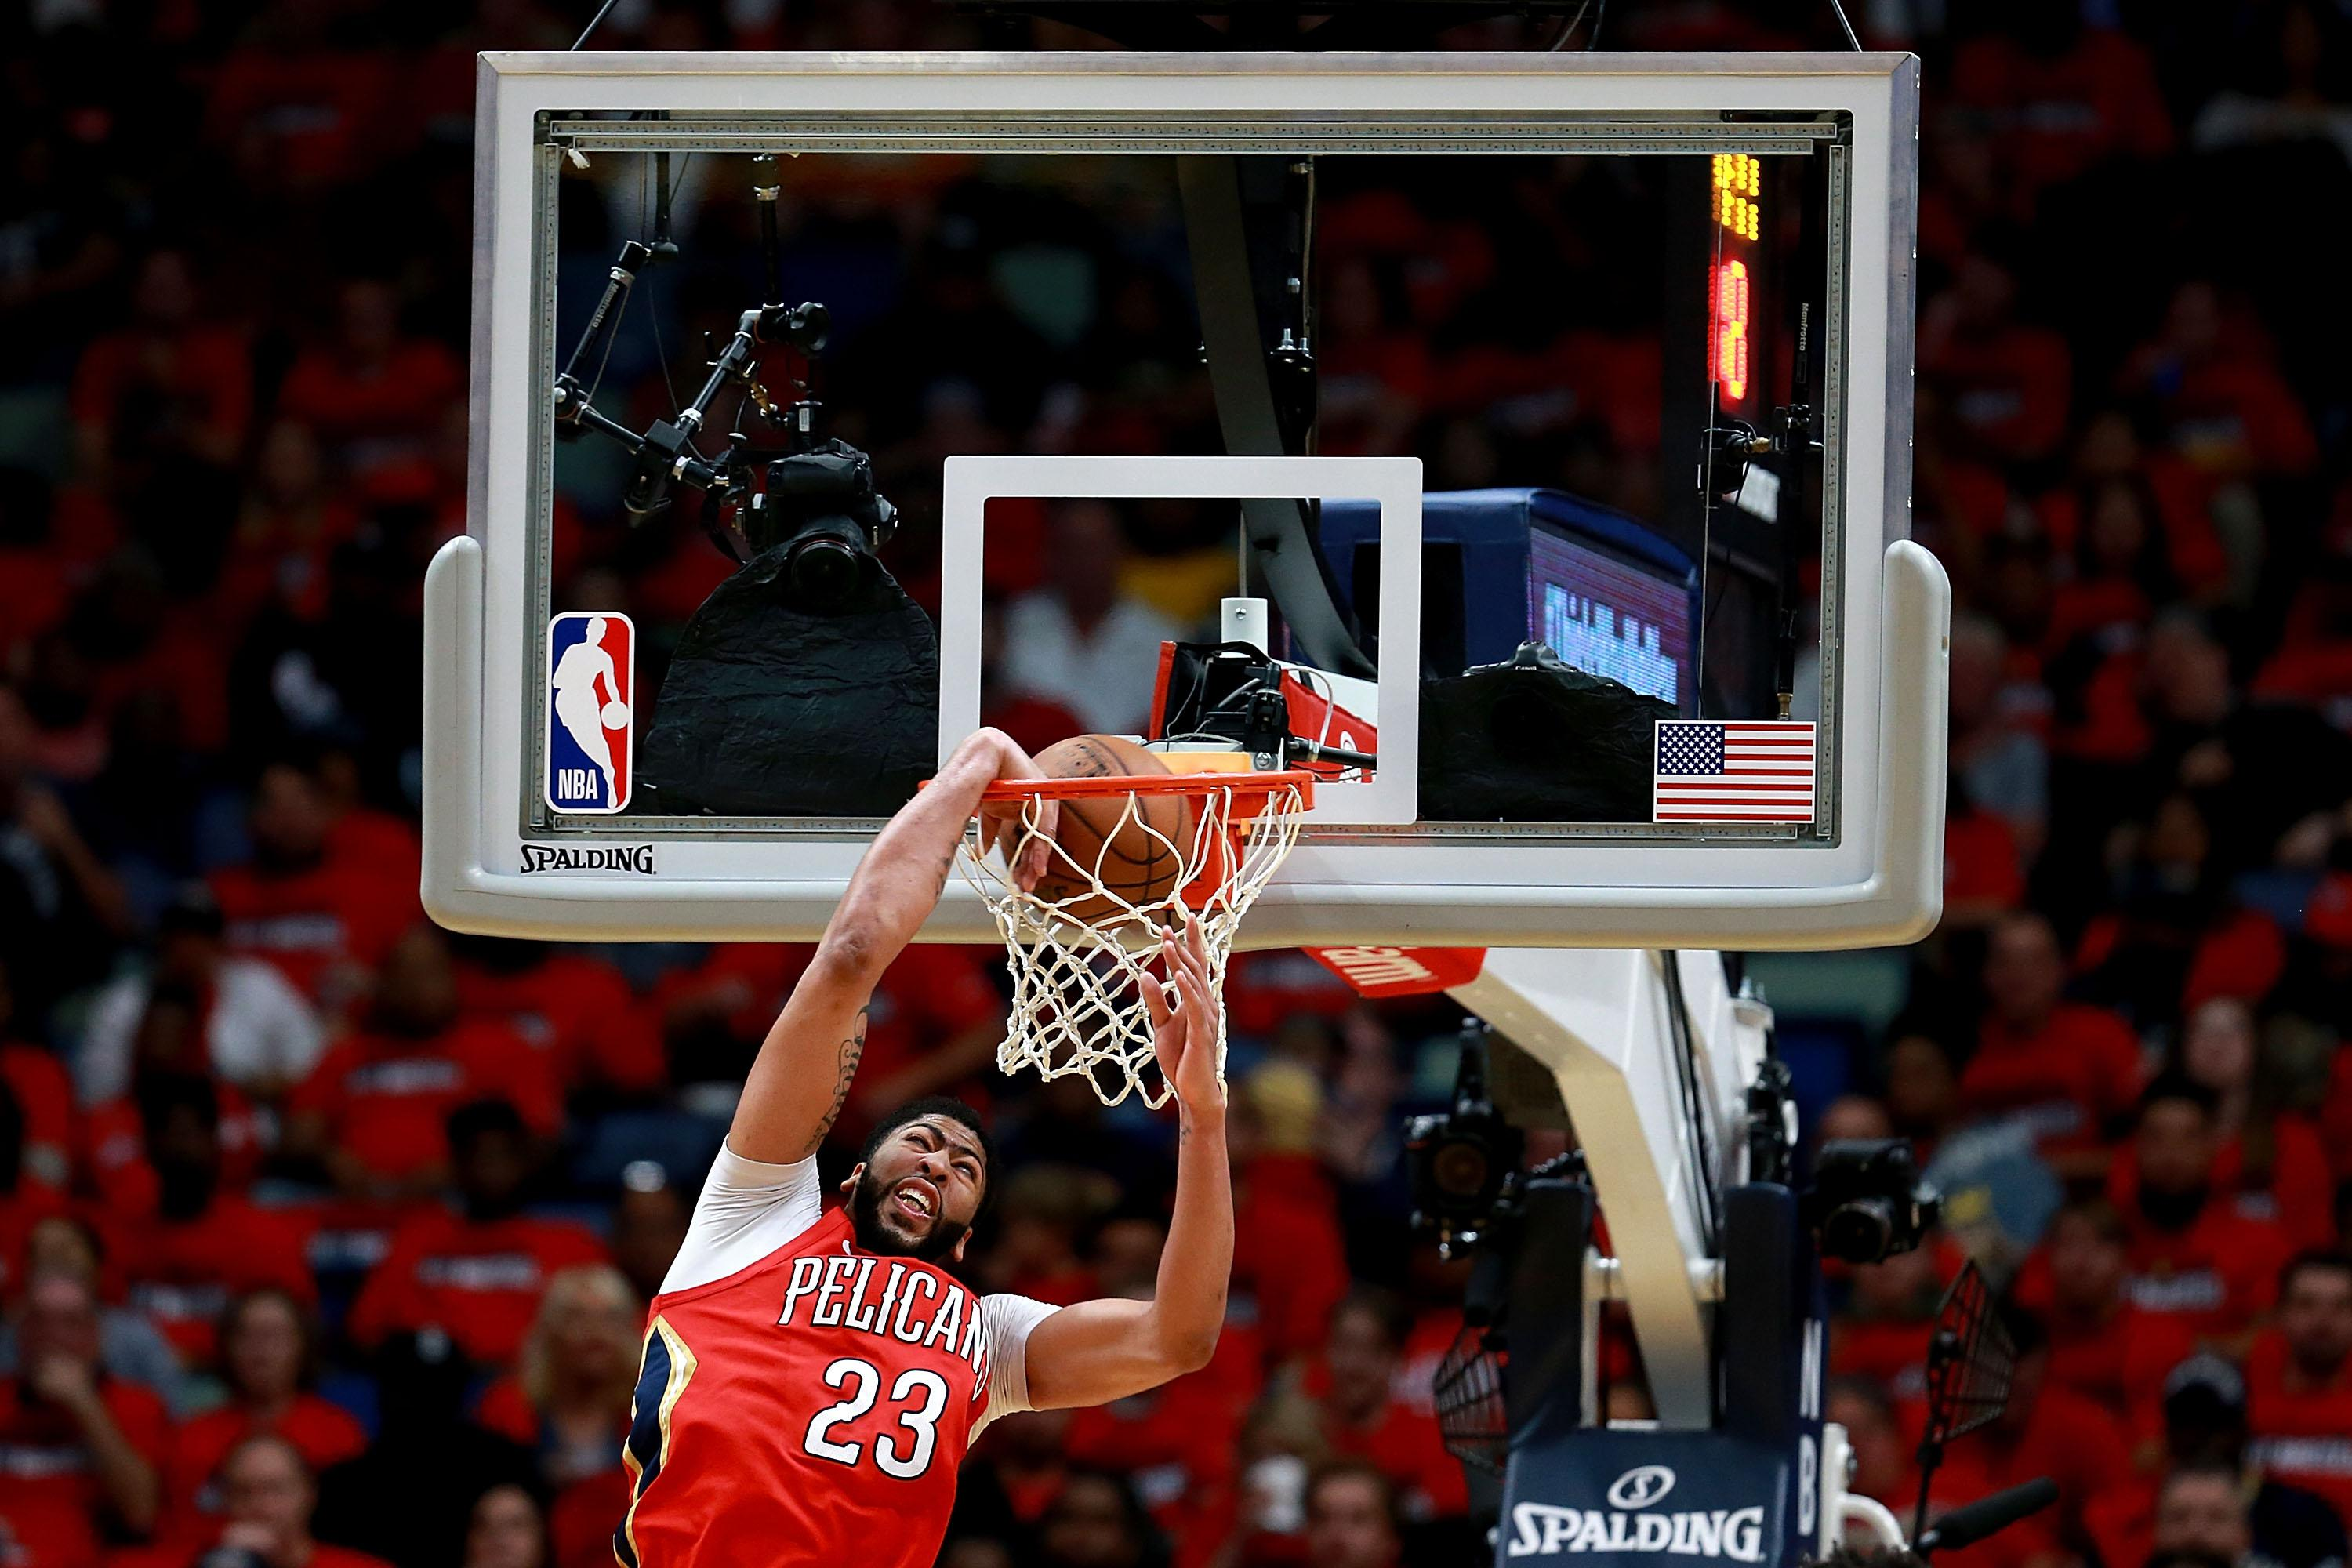 NEW ORLEANS, LA - APRIL 19:  Anthony Davis #23 of the New Orleans Pelicans dunks the ball during Game 3 of the Western Conference playoffs against the Portland Trail Blazers at the Smoothie King Center on April 19, 2018 in New Orleans, Louisiana. NOTE TO USER: User expressly acknowledges and agrees that, by downloading and or using this photograph, User is consenting to the terms and conditions of the Getty Images License Agreement.  (Photo by Sean Gardner/Getty Images)